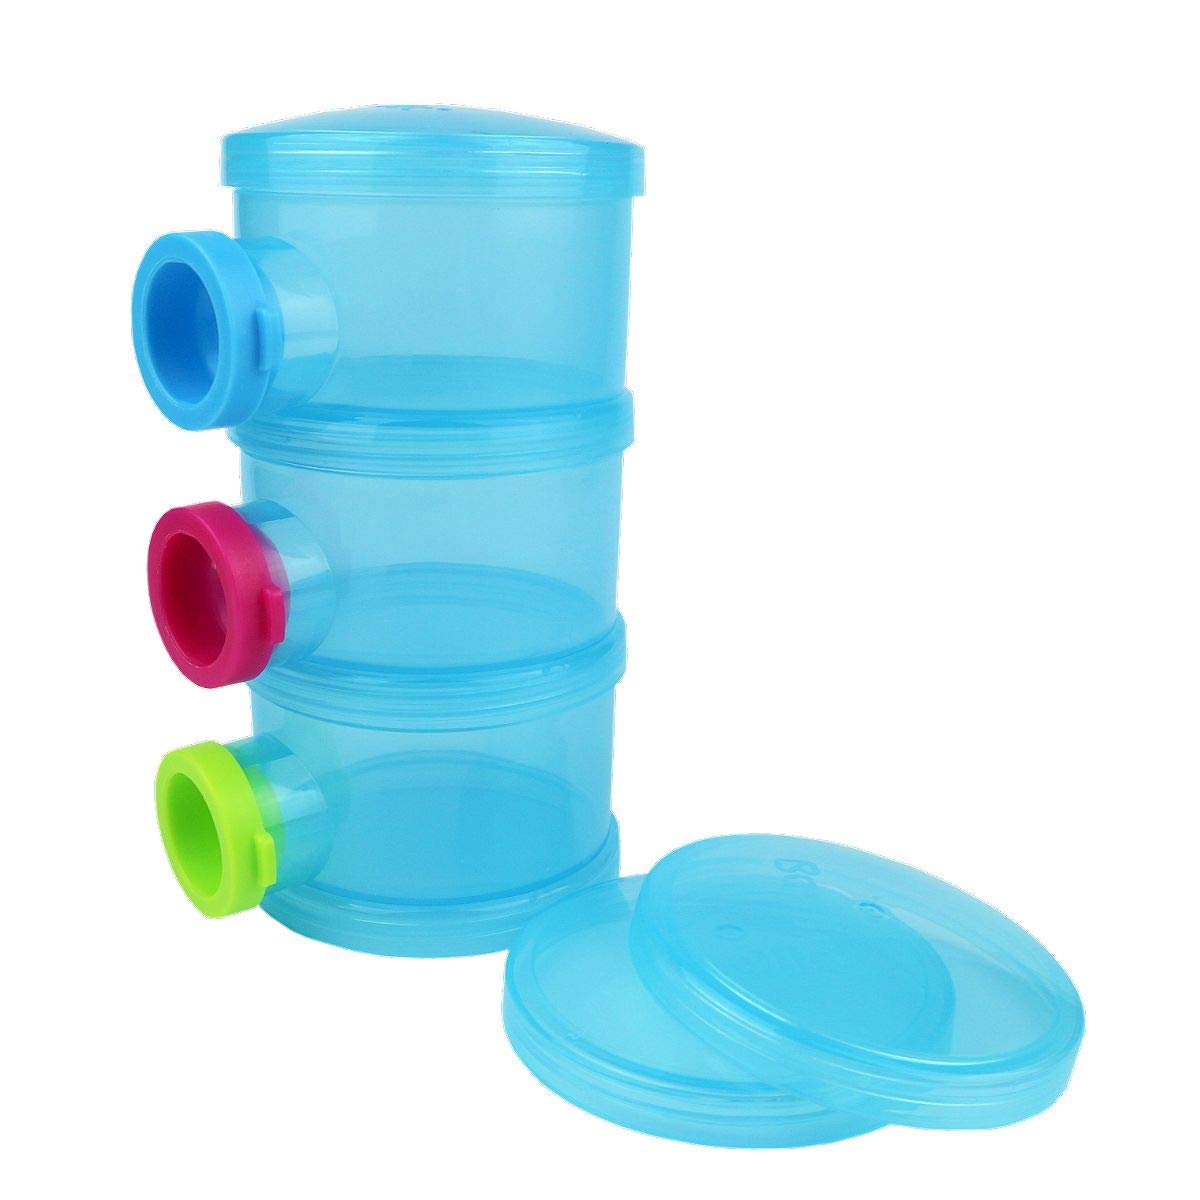 Basilic Baby Milk Powder Formula Dispenser Snack Container Cup - 3 Compartment (Blue) by Basilic